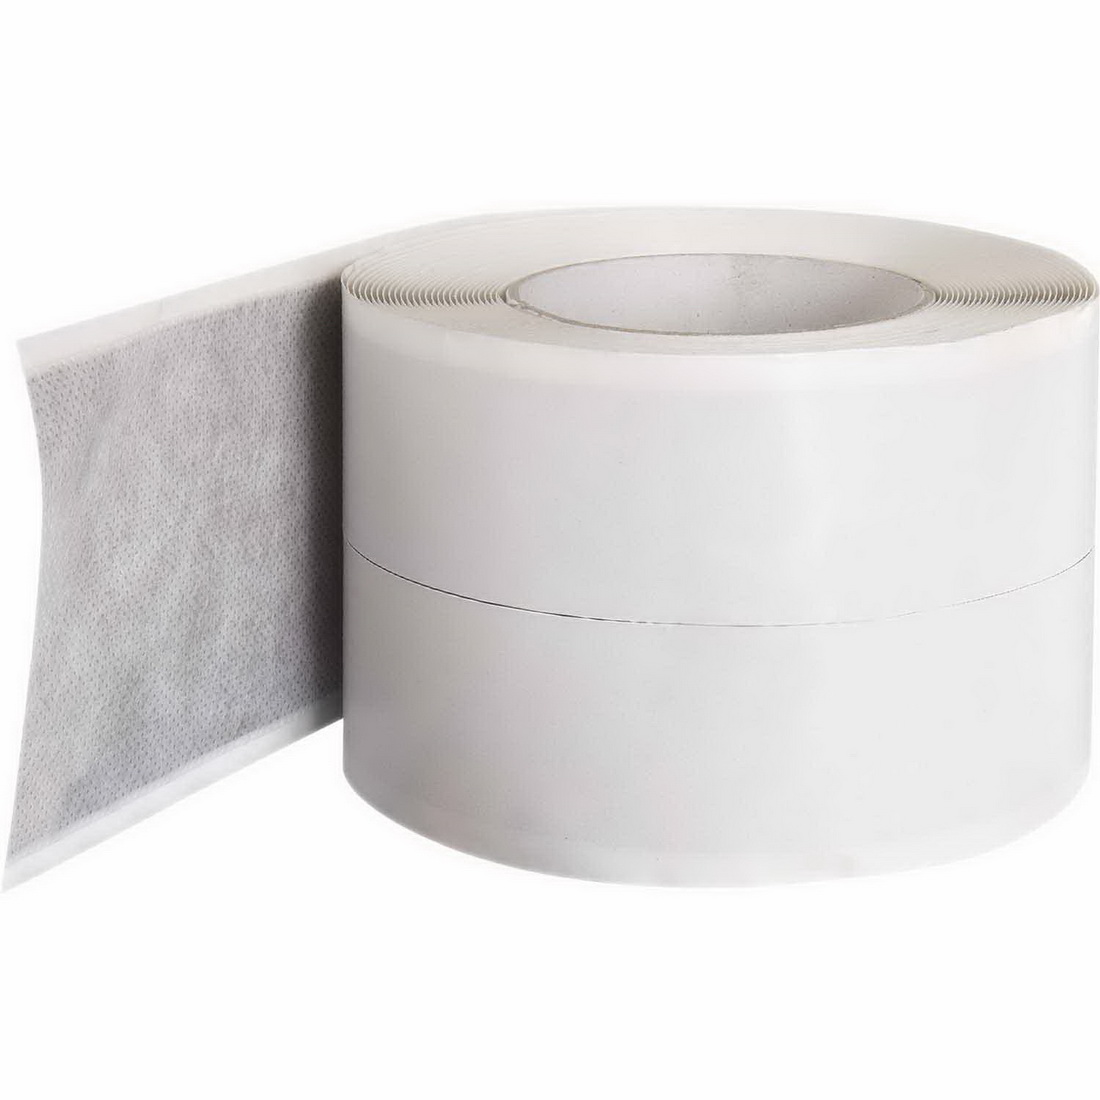 Express Wet Area Self Adhesive Tape Grey 80mm x 10m Roll 23648